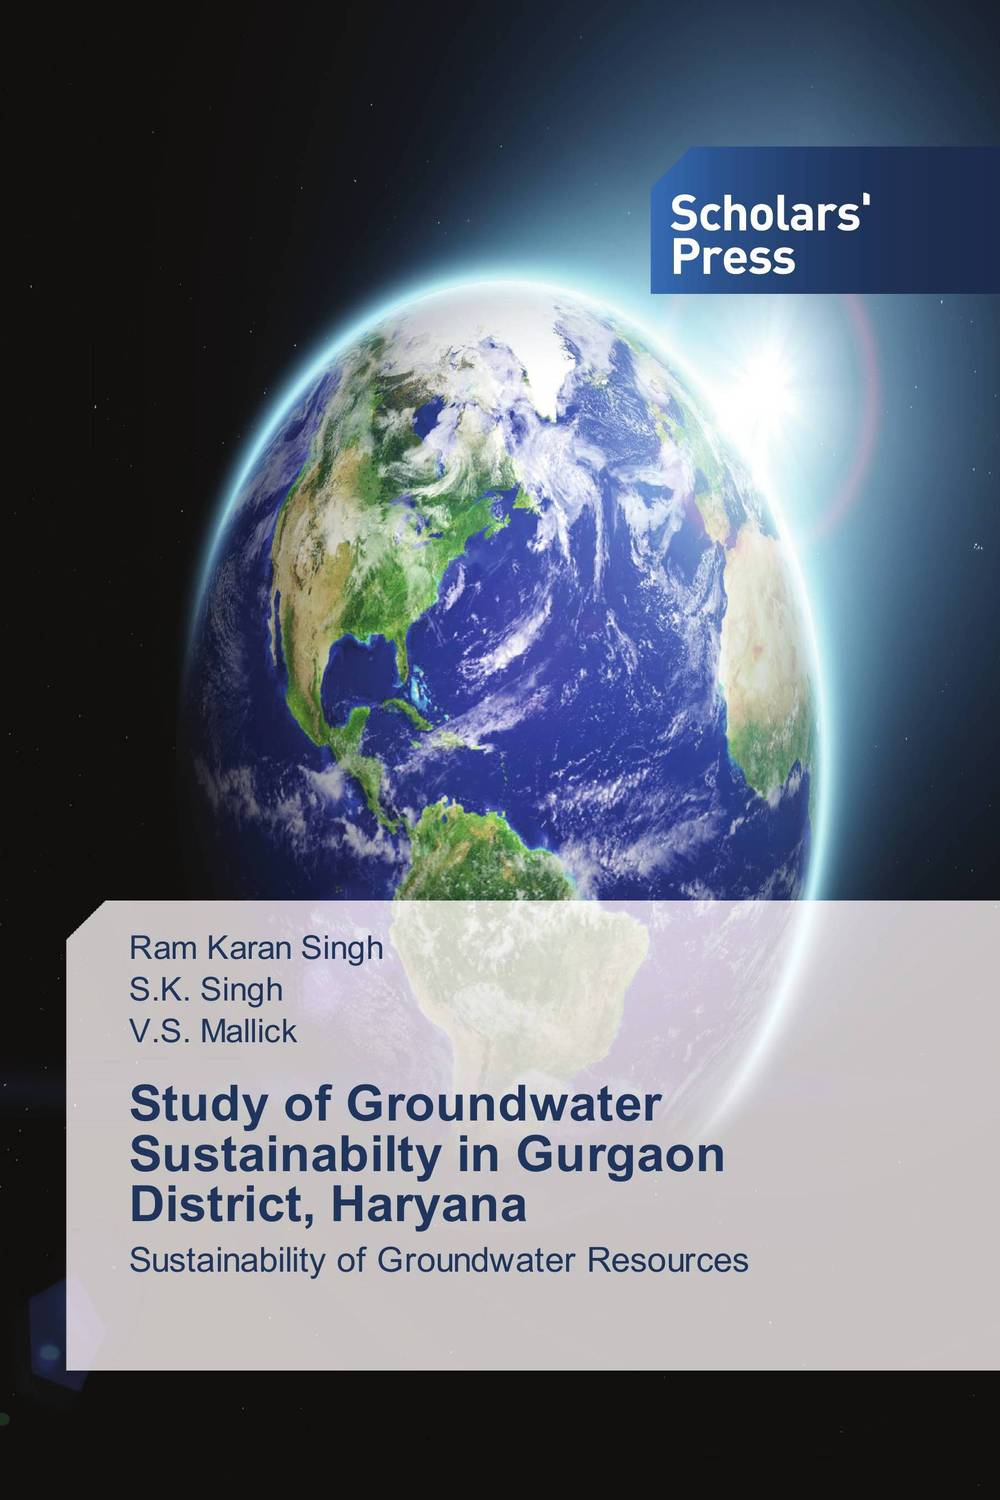 Study of Groundwater Sustainabilty in Gurgaon District, Haryana фильтры помпы the source of water